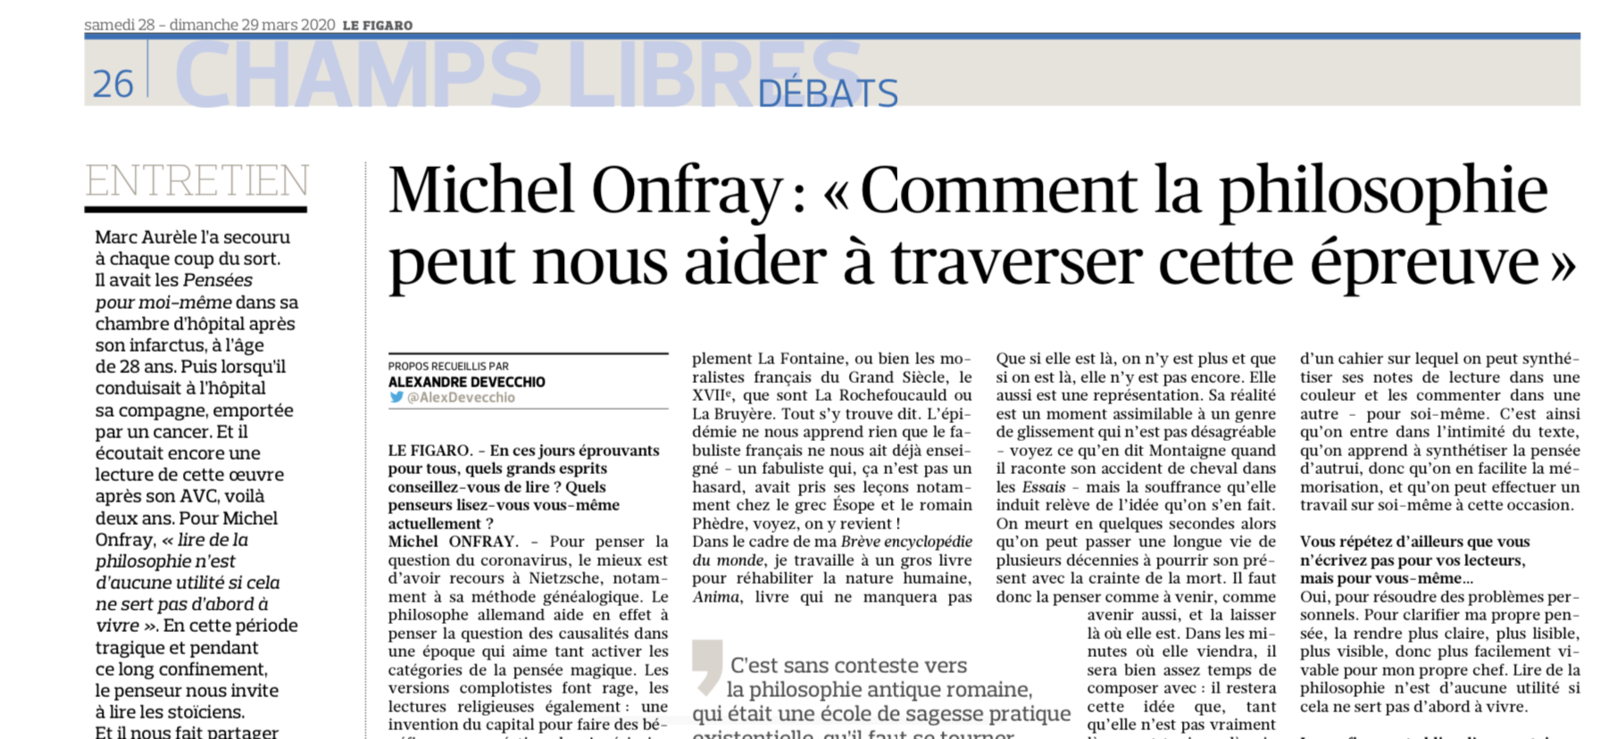 Michel Onfray - Le Figaro 28 mars 2020